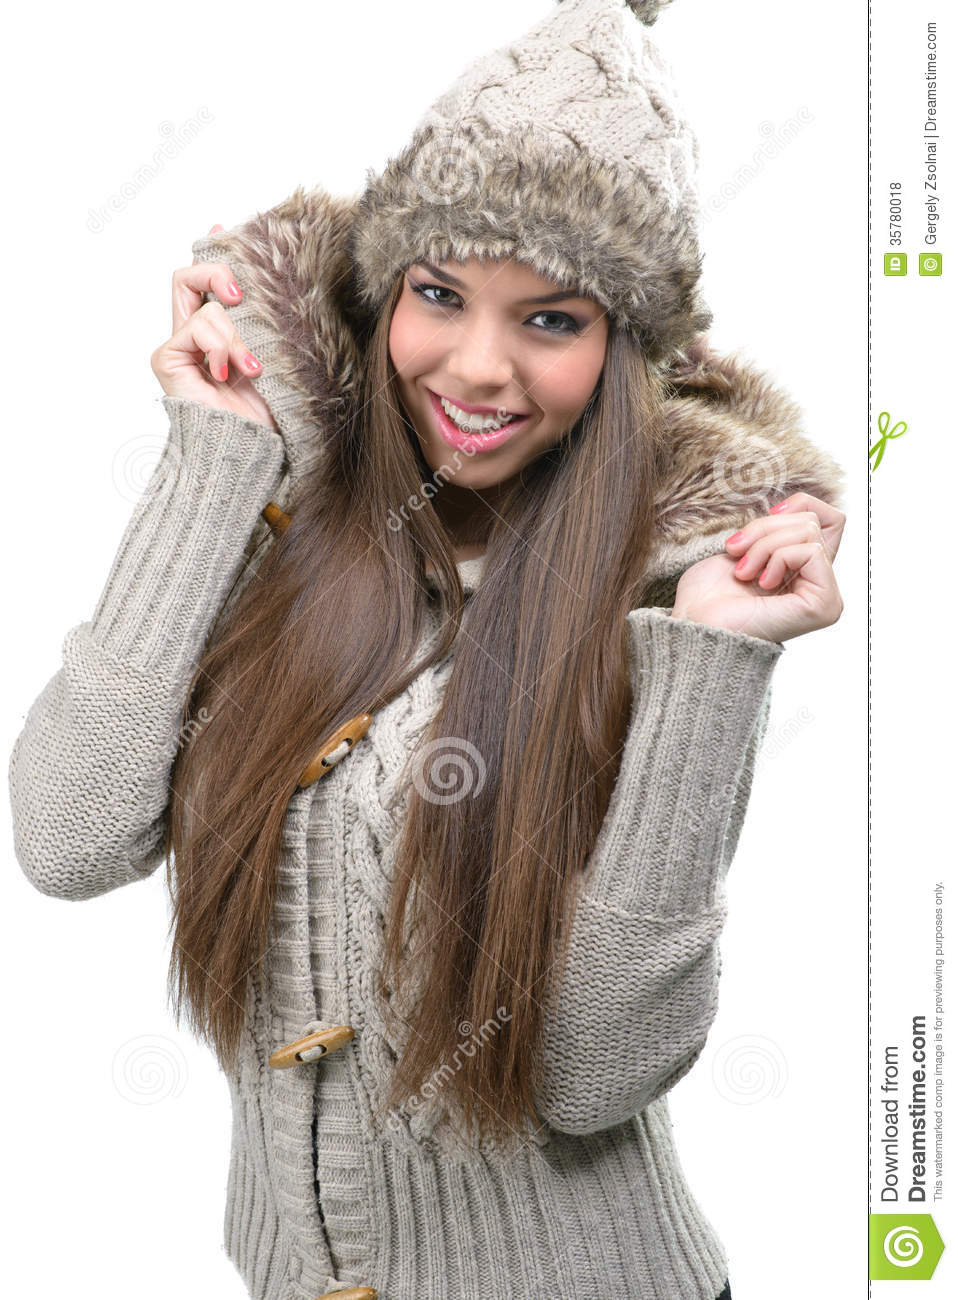 fashion model warm winter clothing stock photo image 35780018. Black Bedroom Furniture Sets. Home Design Ideas